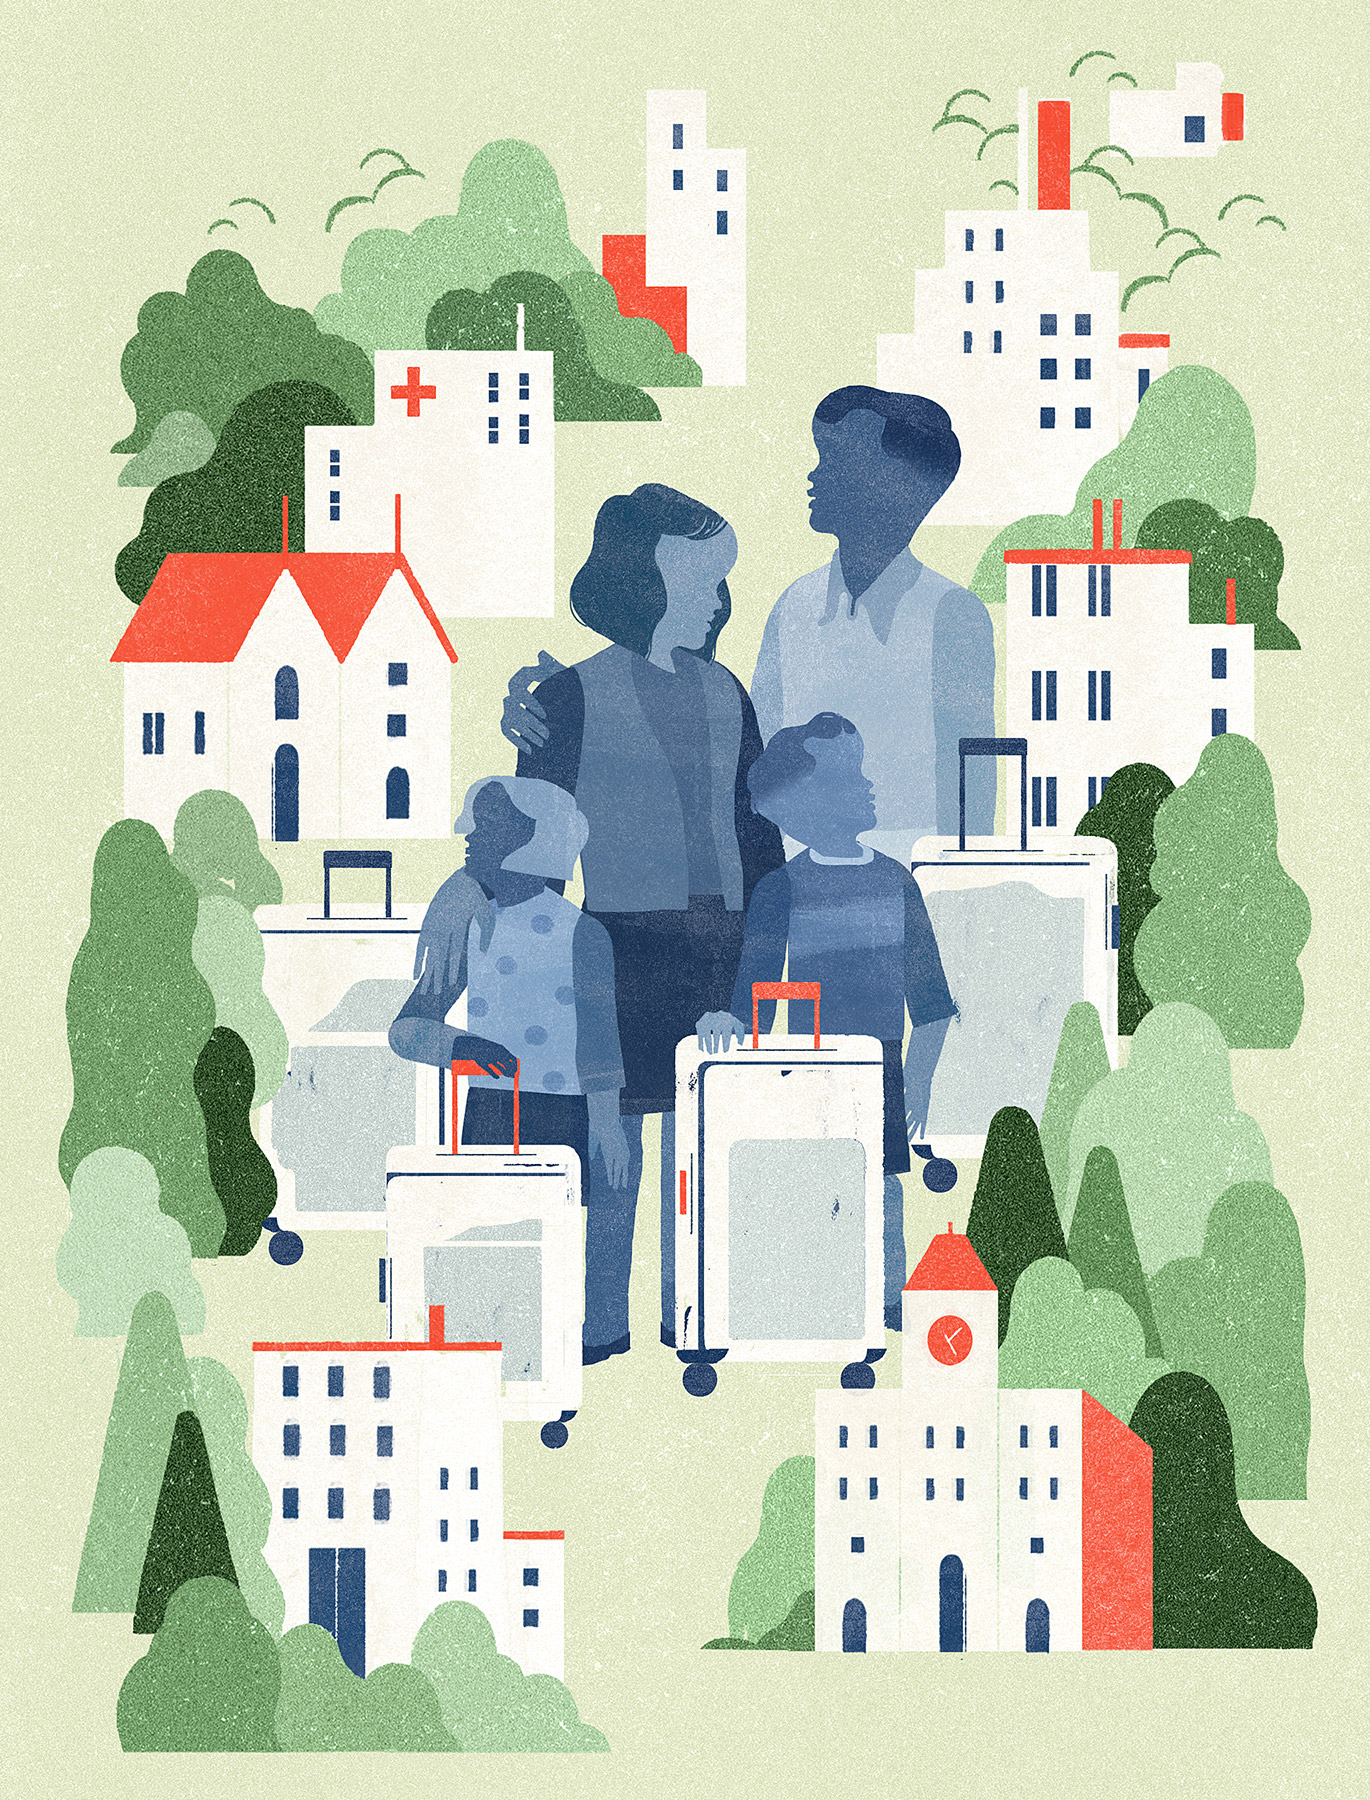 A couple and two children coloured in blue are standing at the centre with suitcases and surrounded by miniature-sized buildings and trees